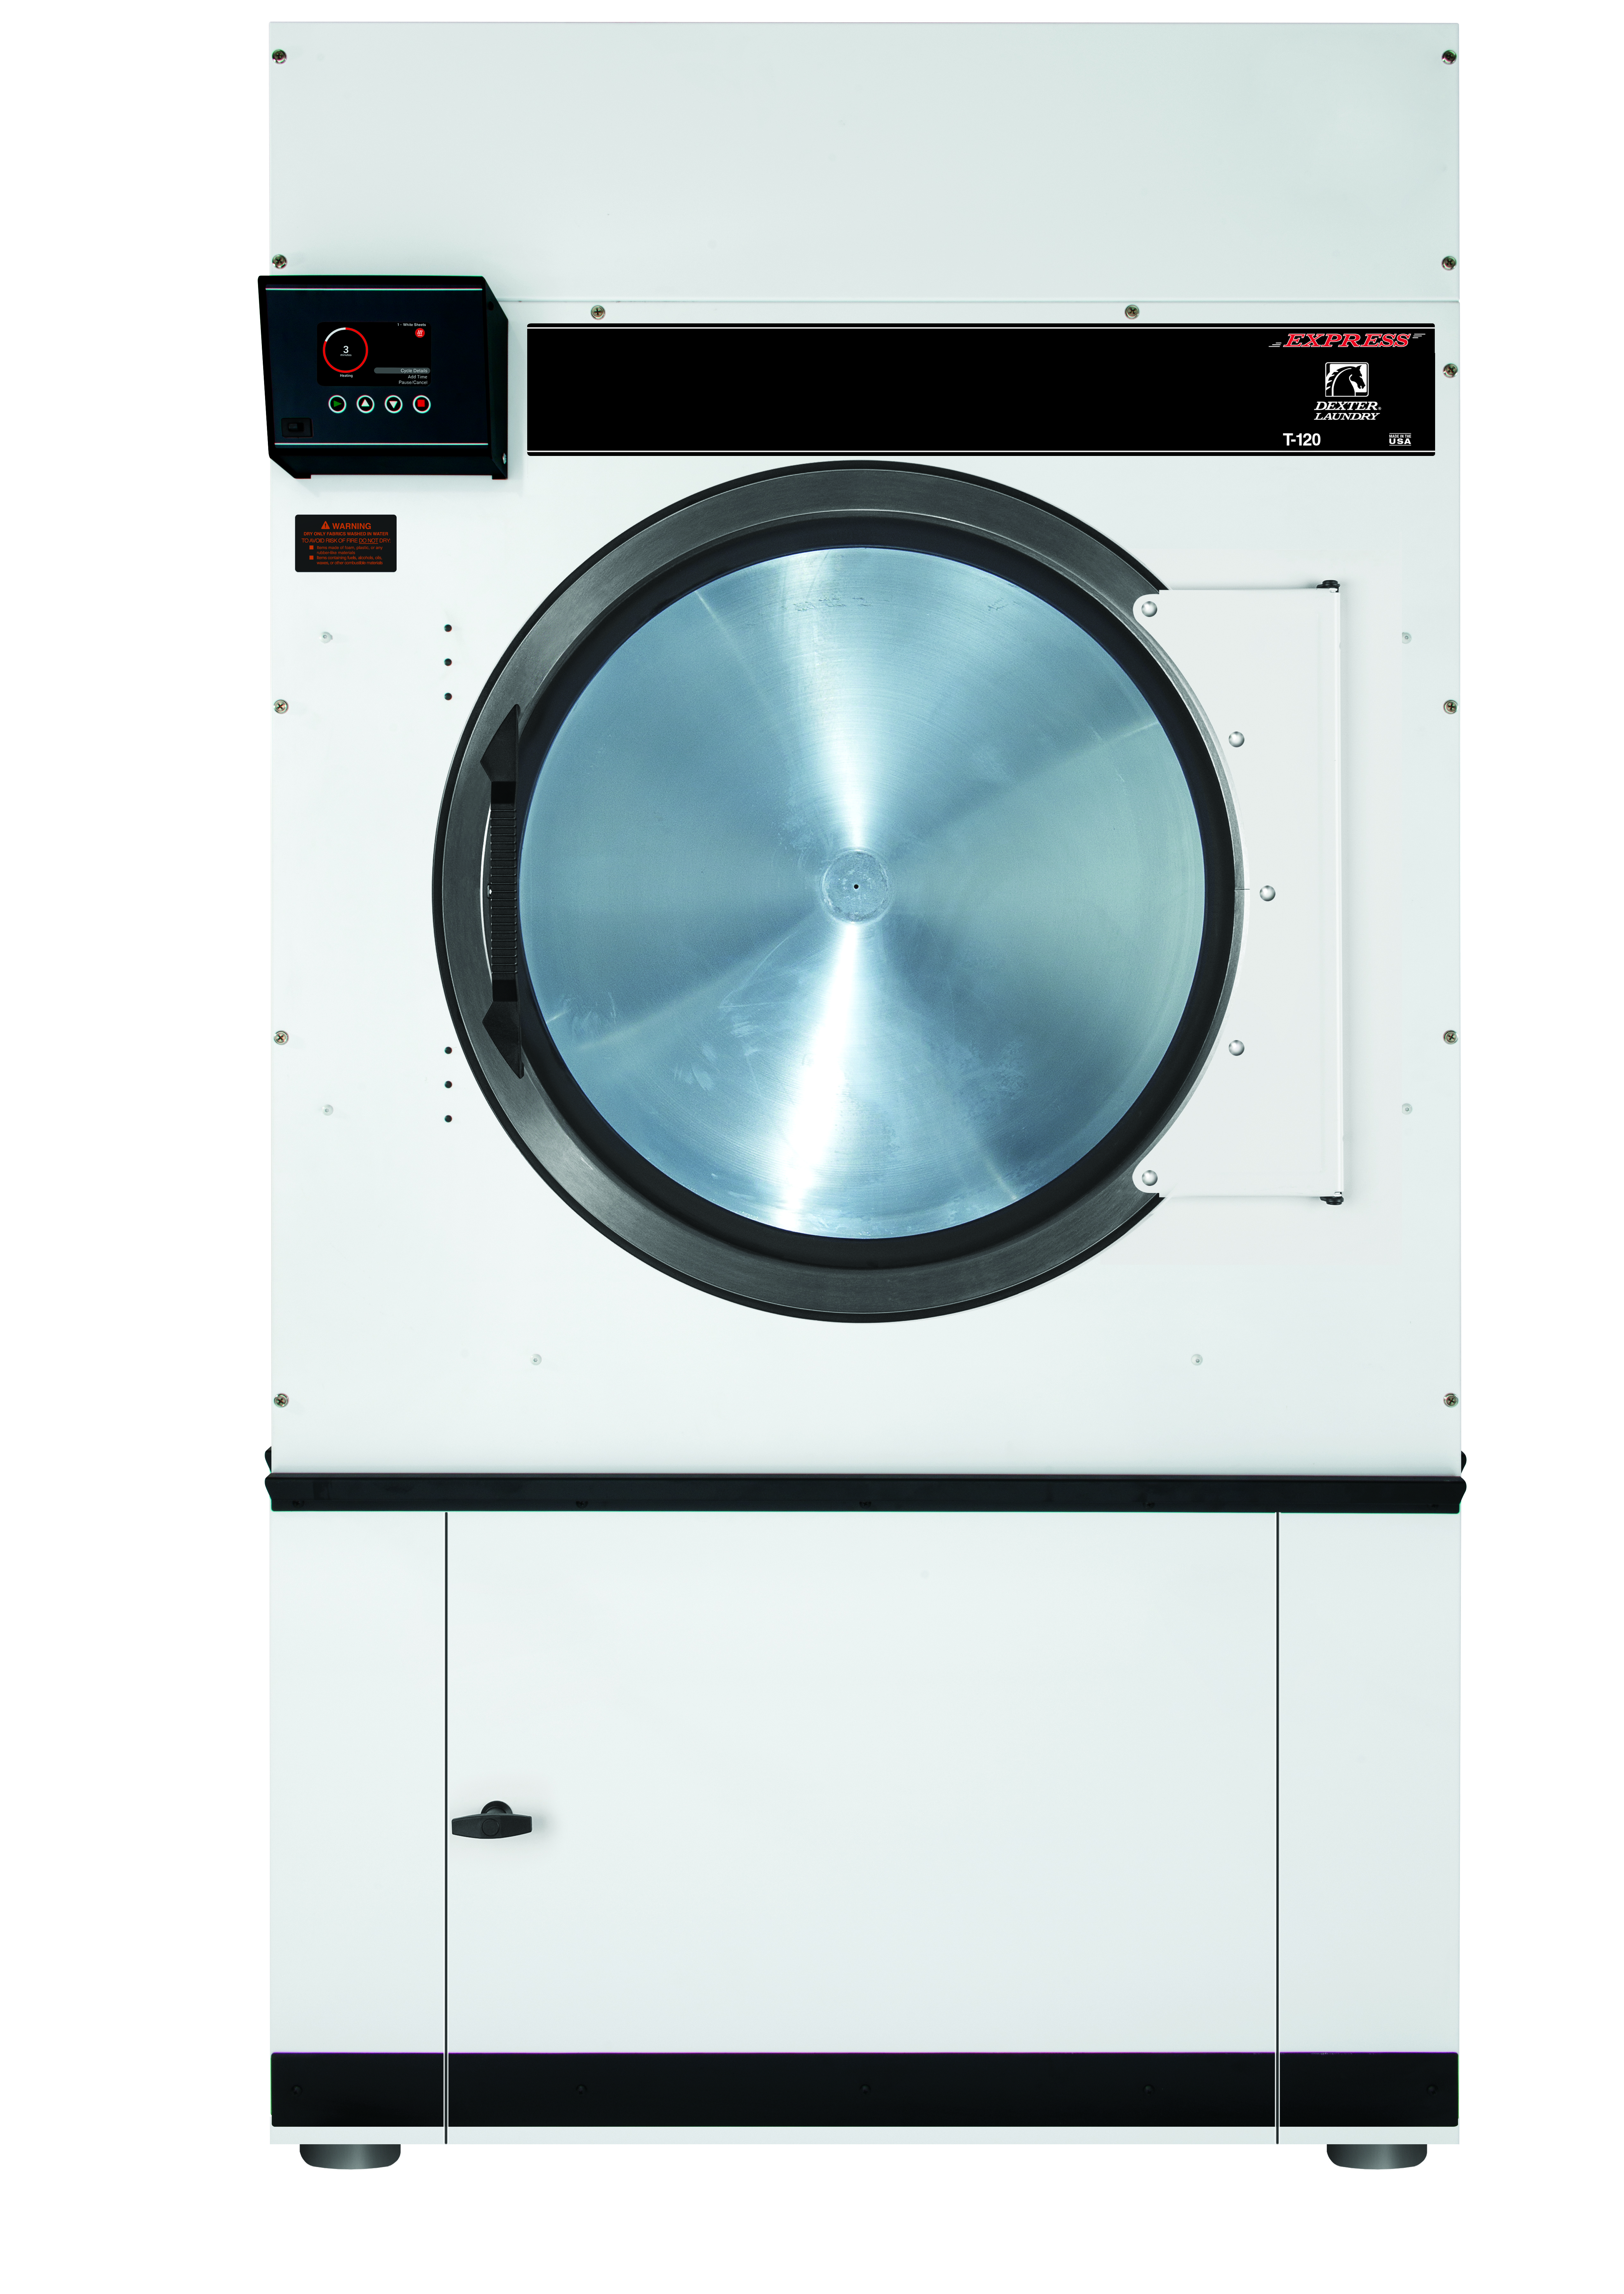 Dexter T-120 O series Product Image